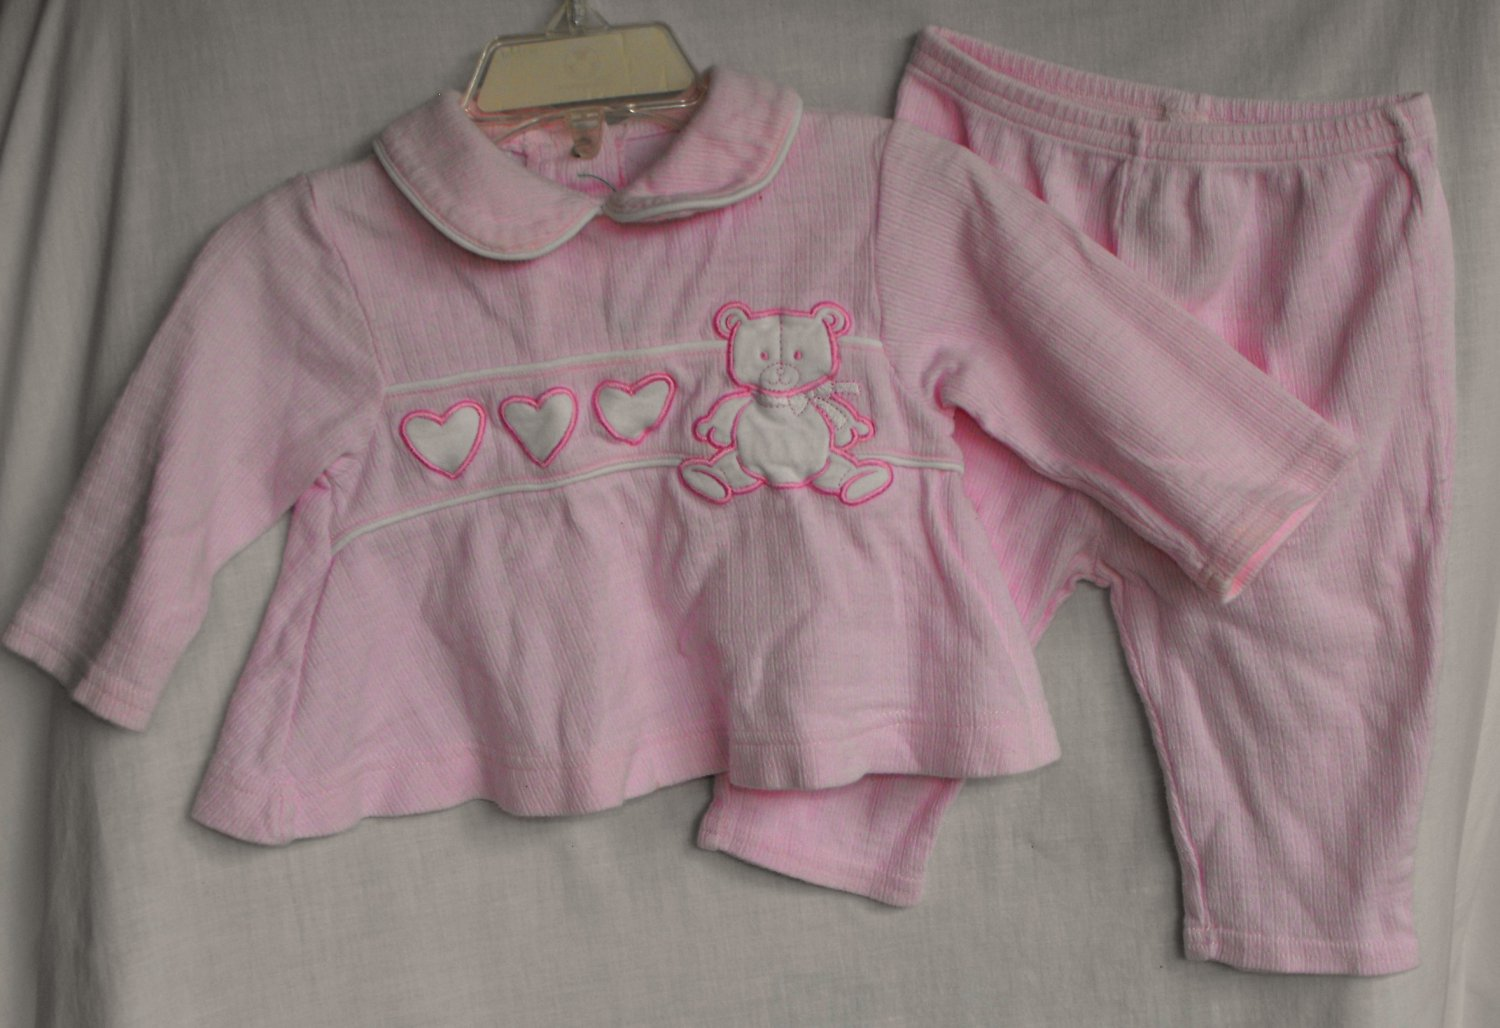 Class Club Baby Girl 3-6 Months 2 Peice Outfit